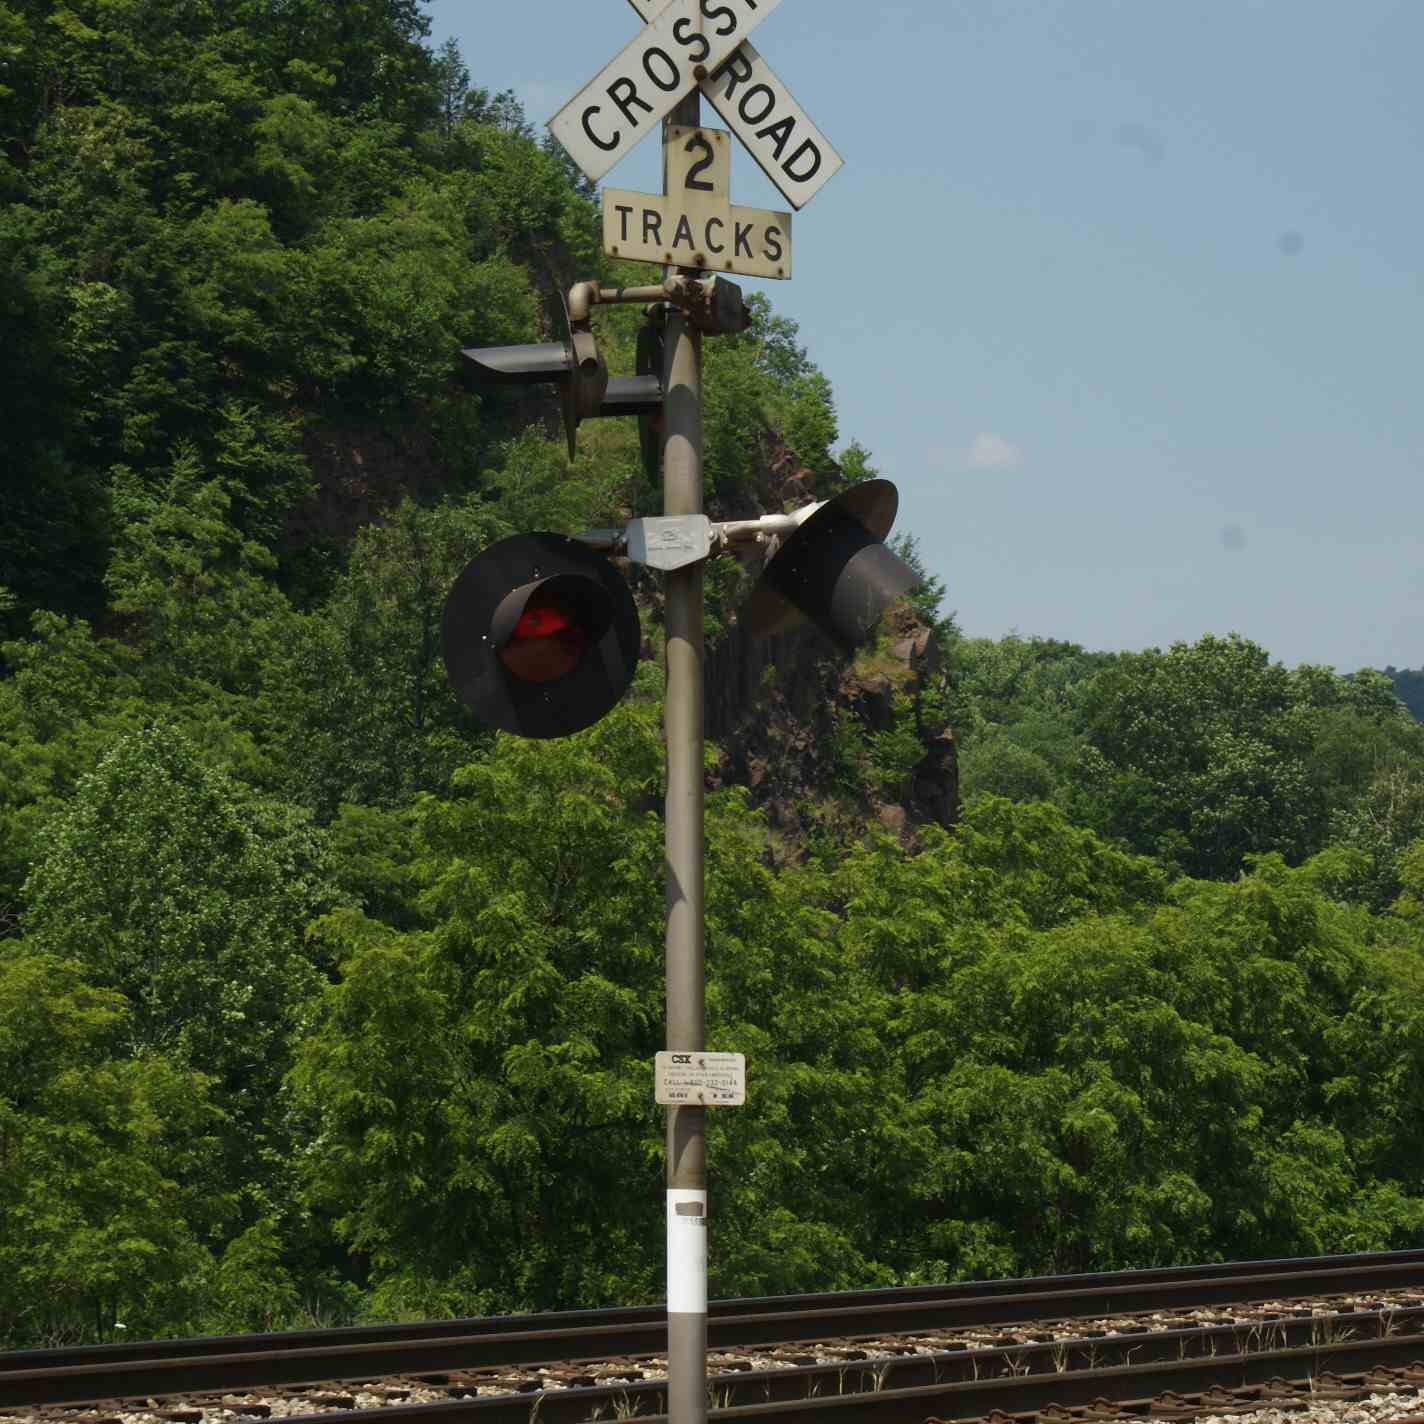 Detailing a Model Railroad Crossing